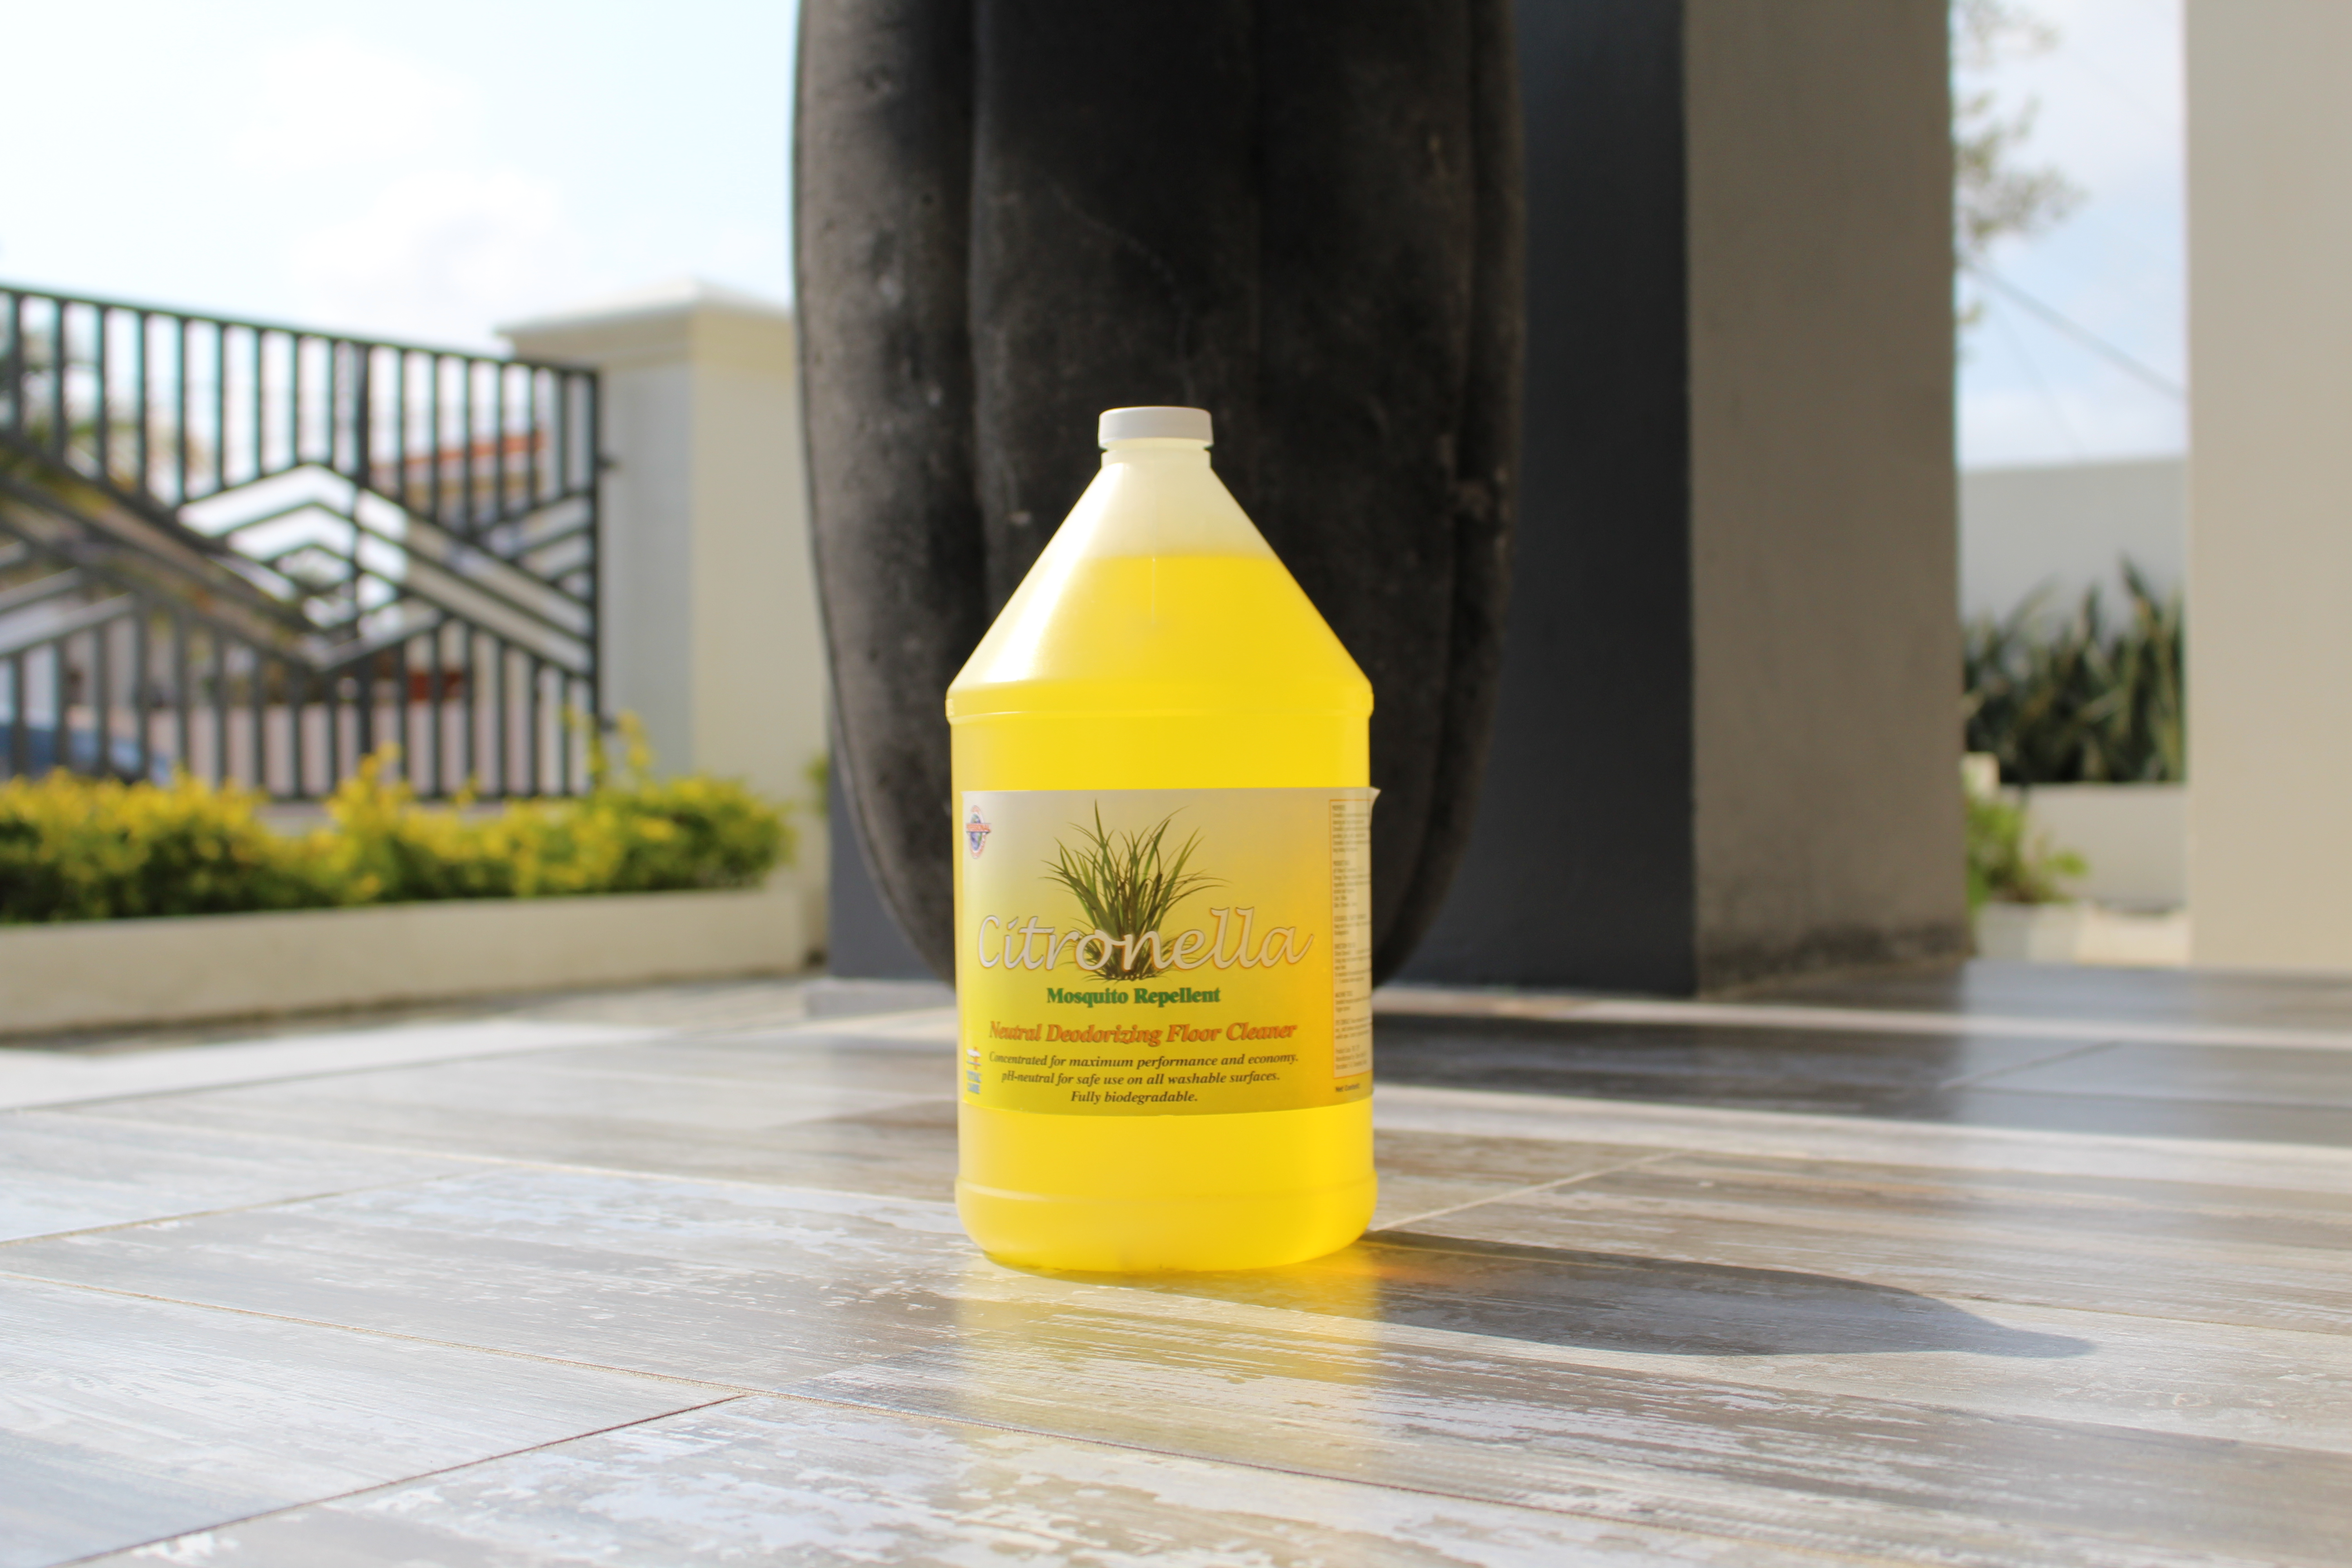 Citronella Mosquito Repellent Floor Cleaner Total Services Aruba